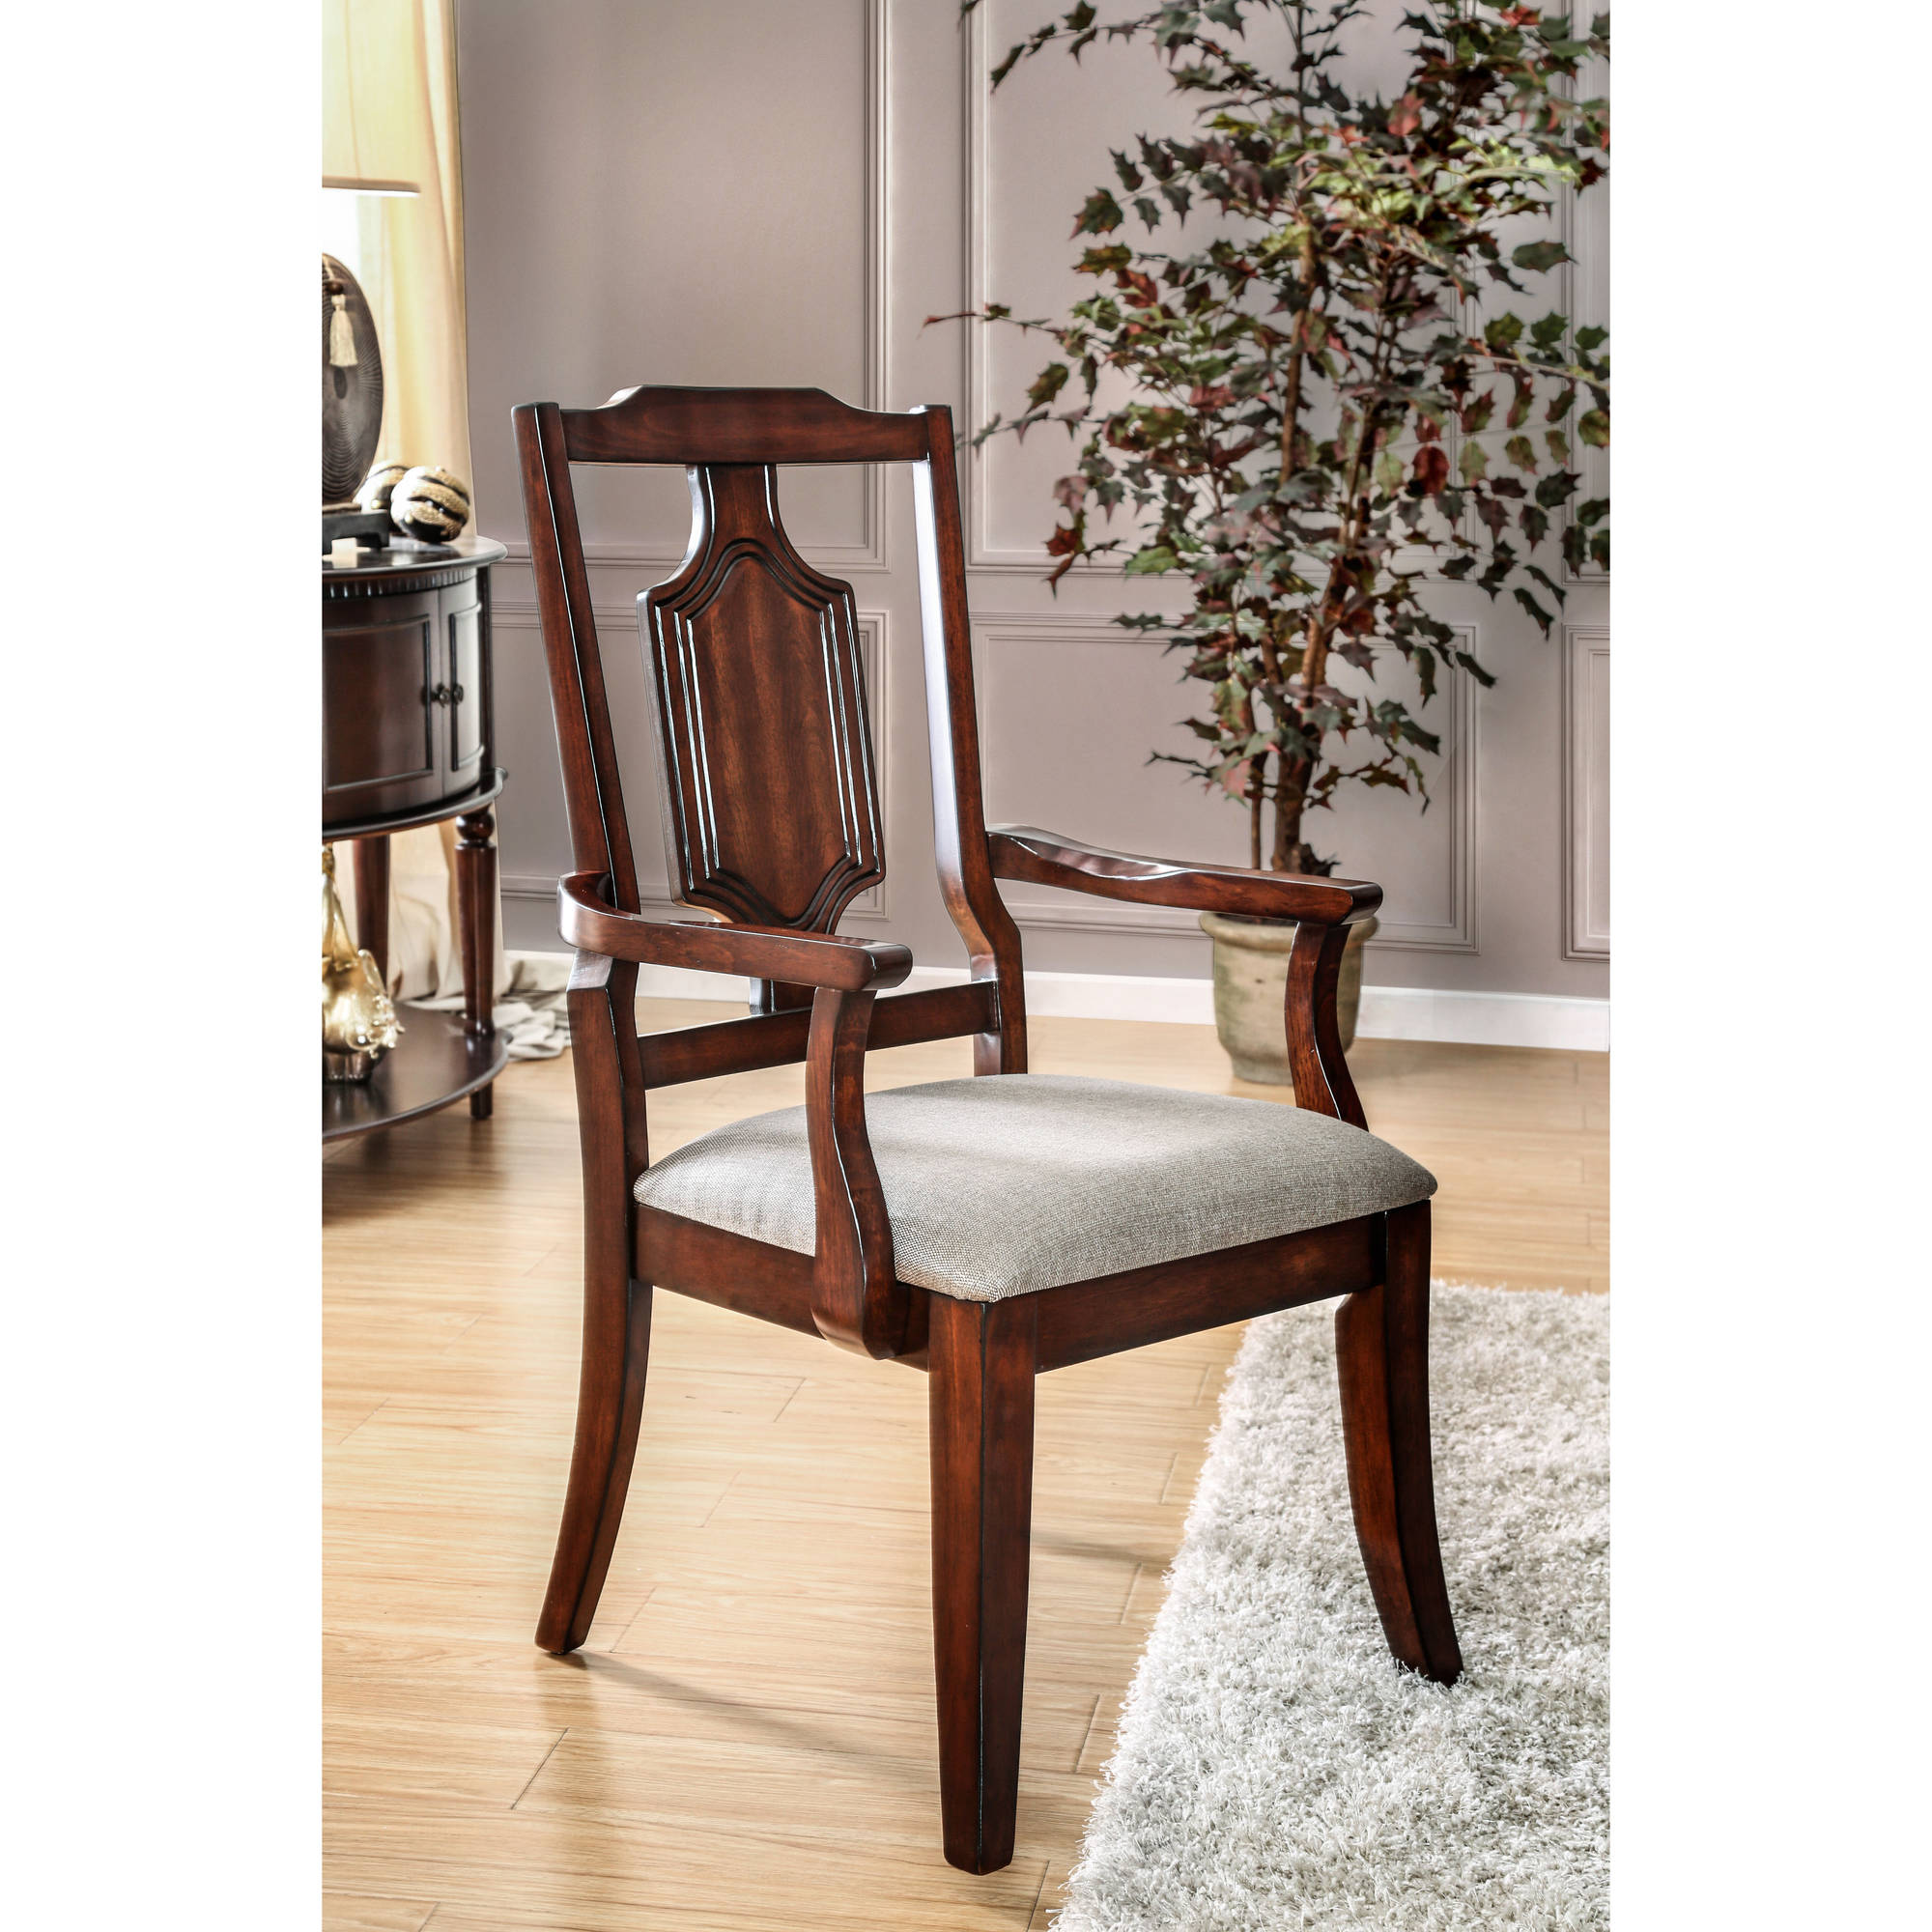 Furniture of America Horatio Traditional Dining Armchair (Set of 2), Brown Cherry by Furniture of America